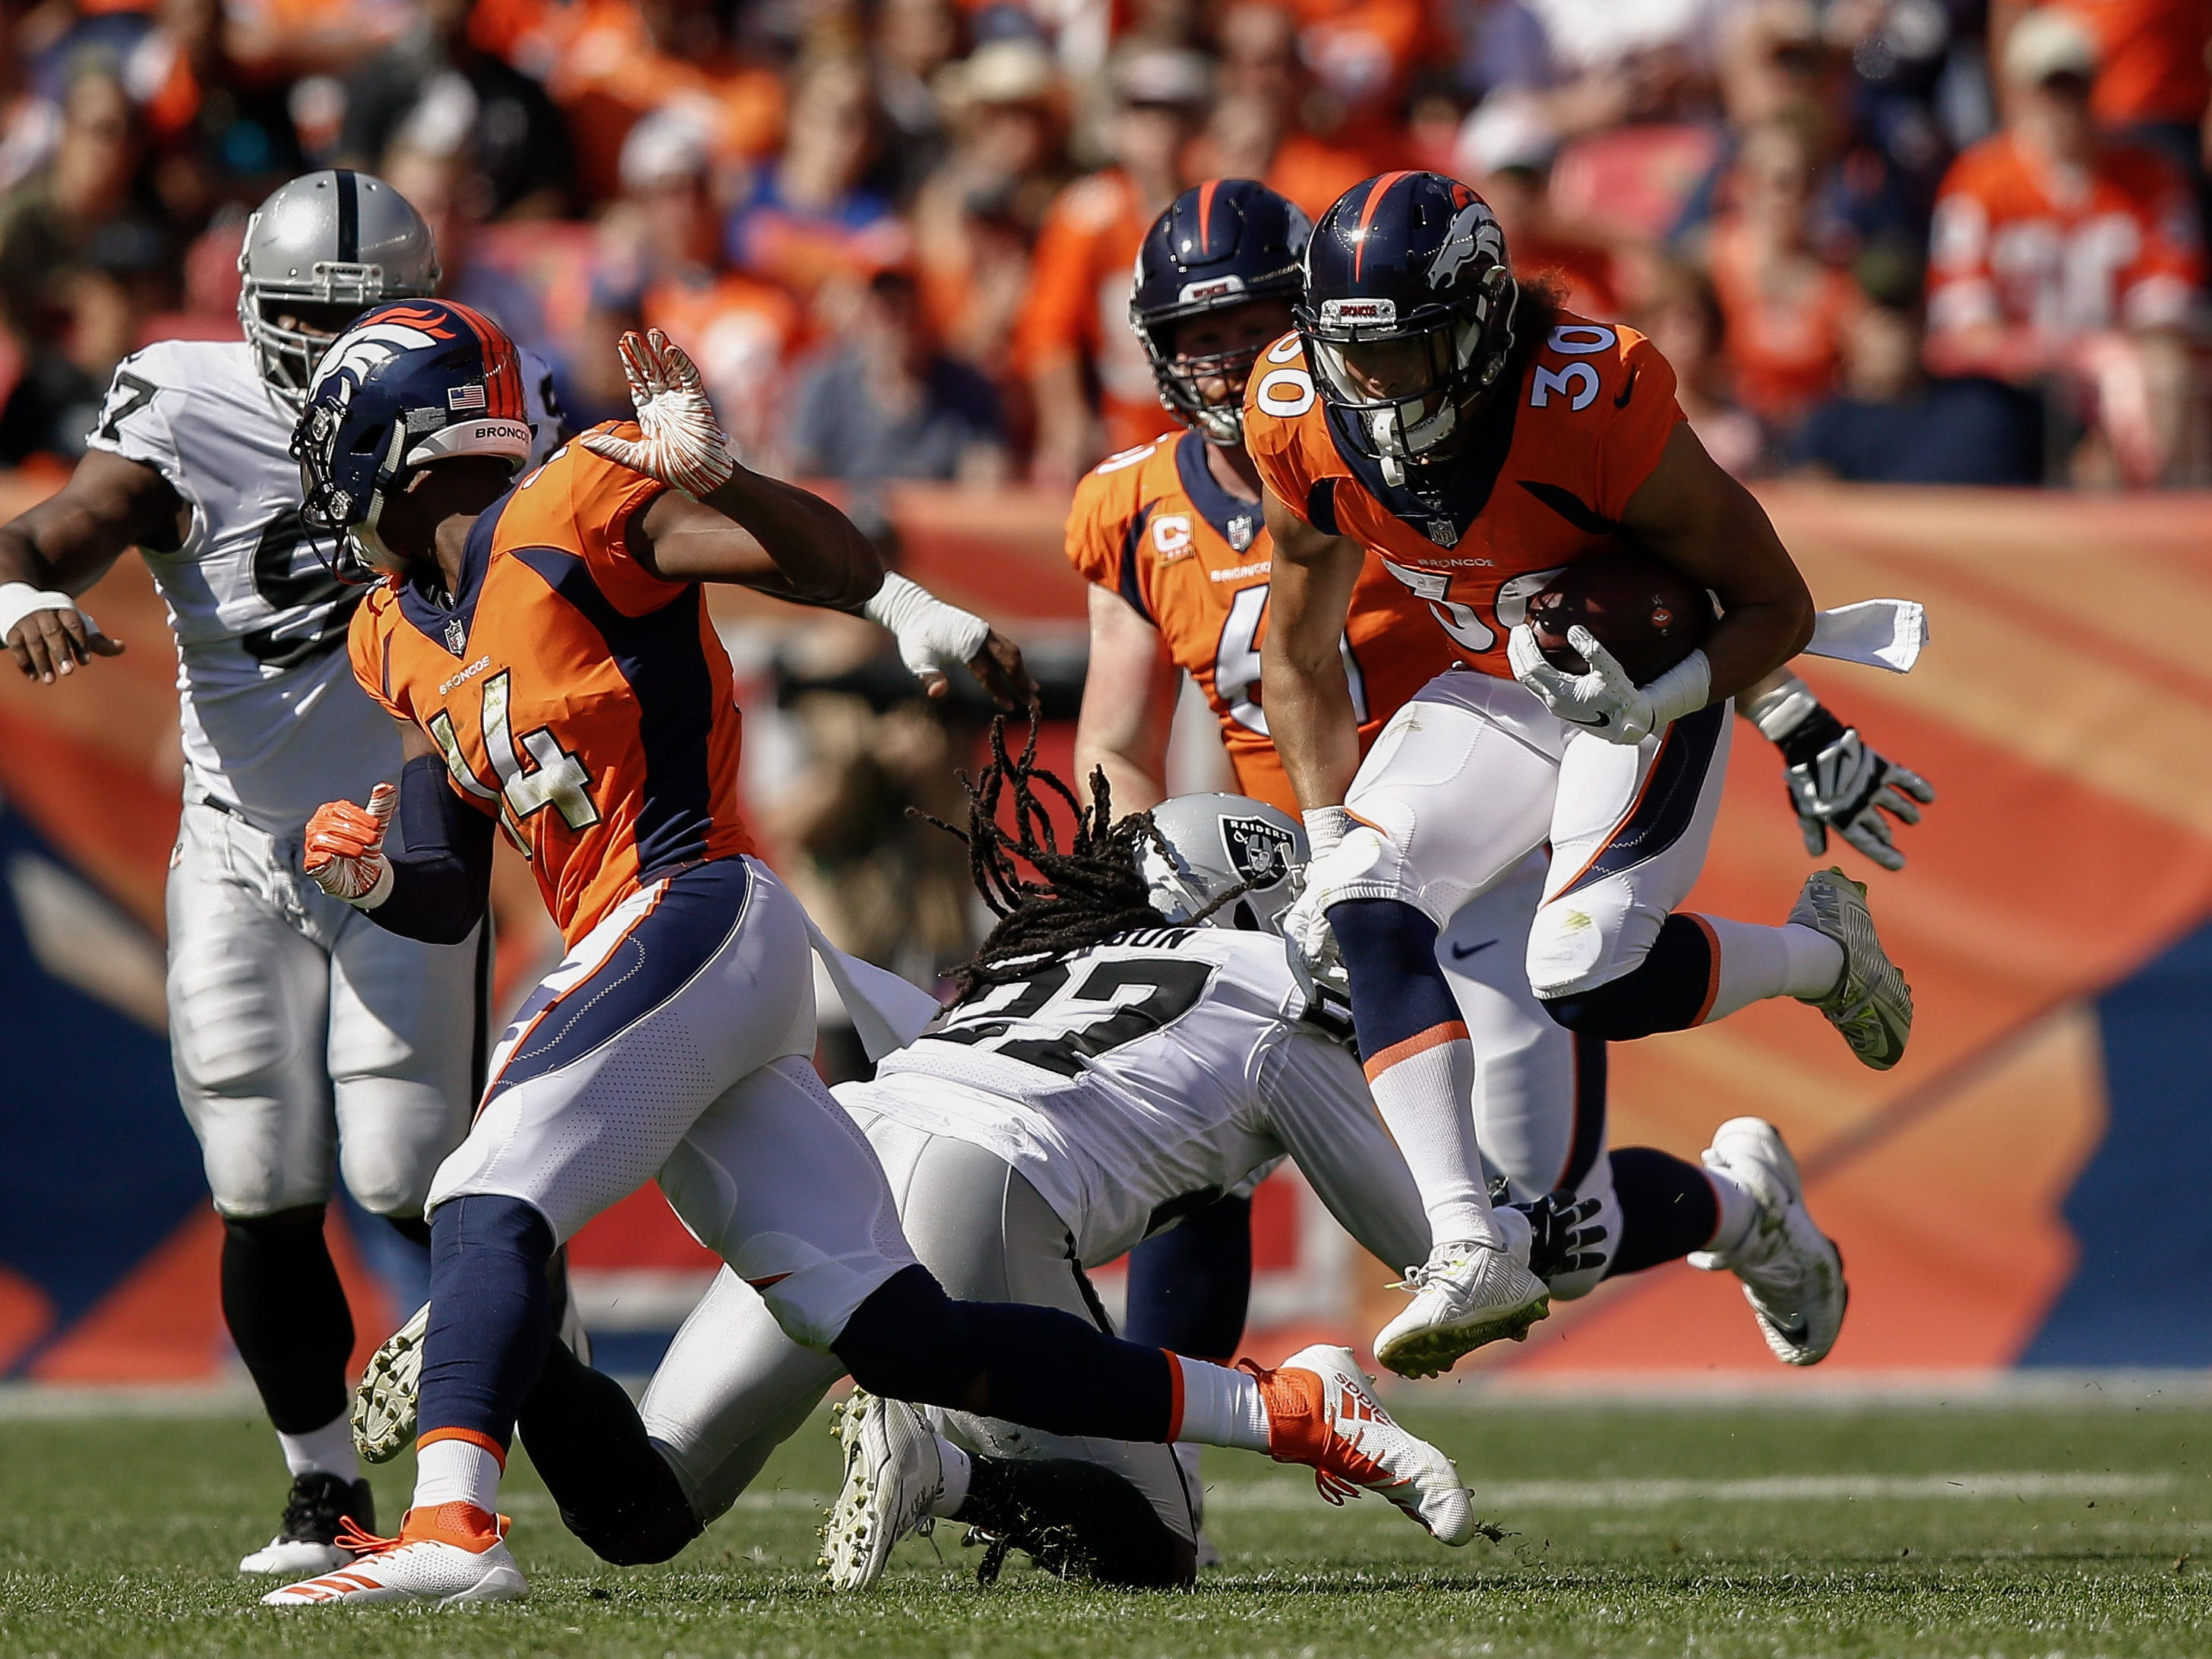 14. Broncos (17): Phillip Lindsay sparking ground game, leading rookies with 178 yards. His 53-yard gallop Sunday was 13 more than any Denver run in 2017.